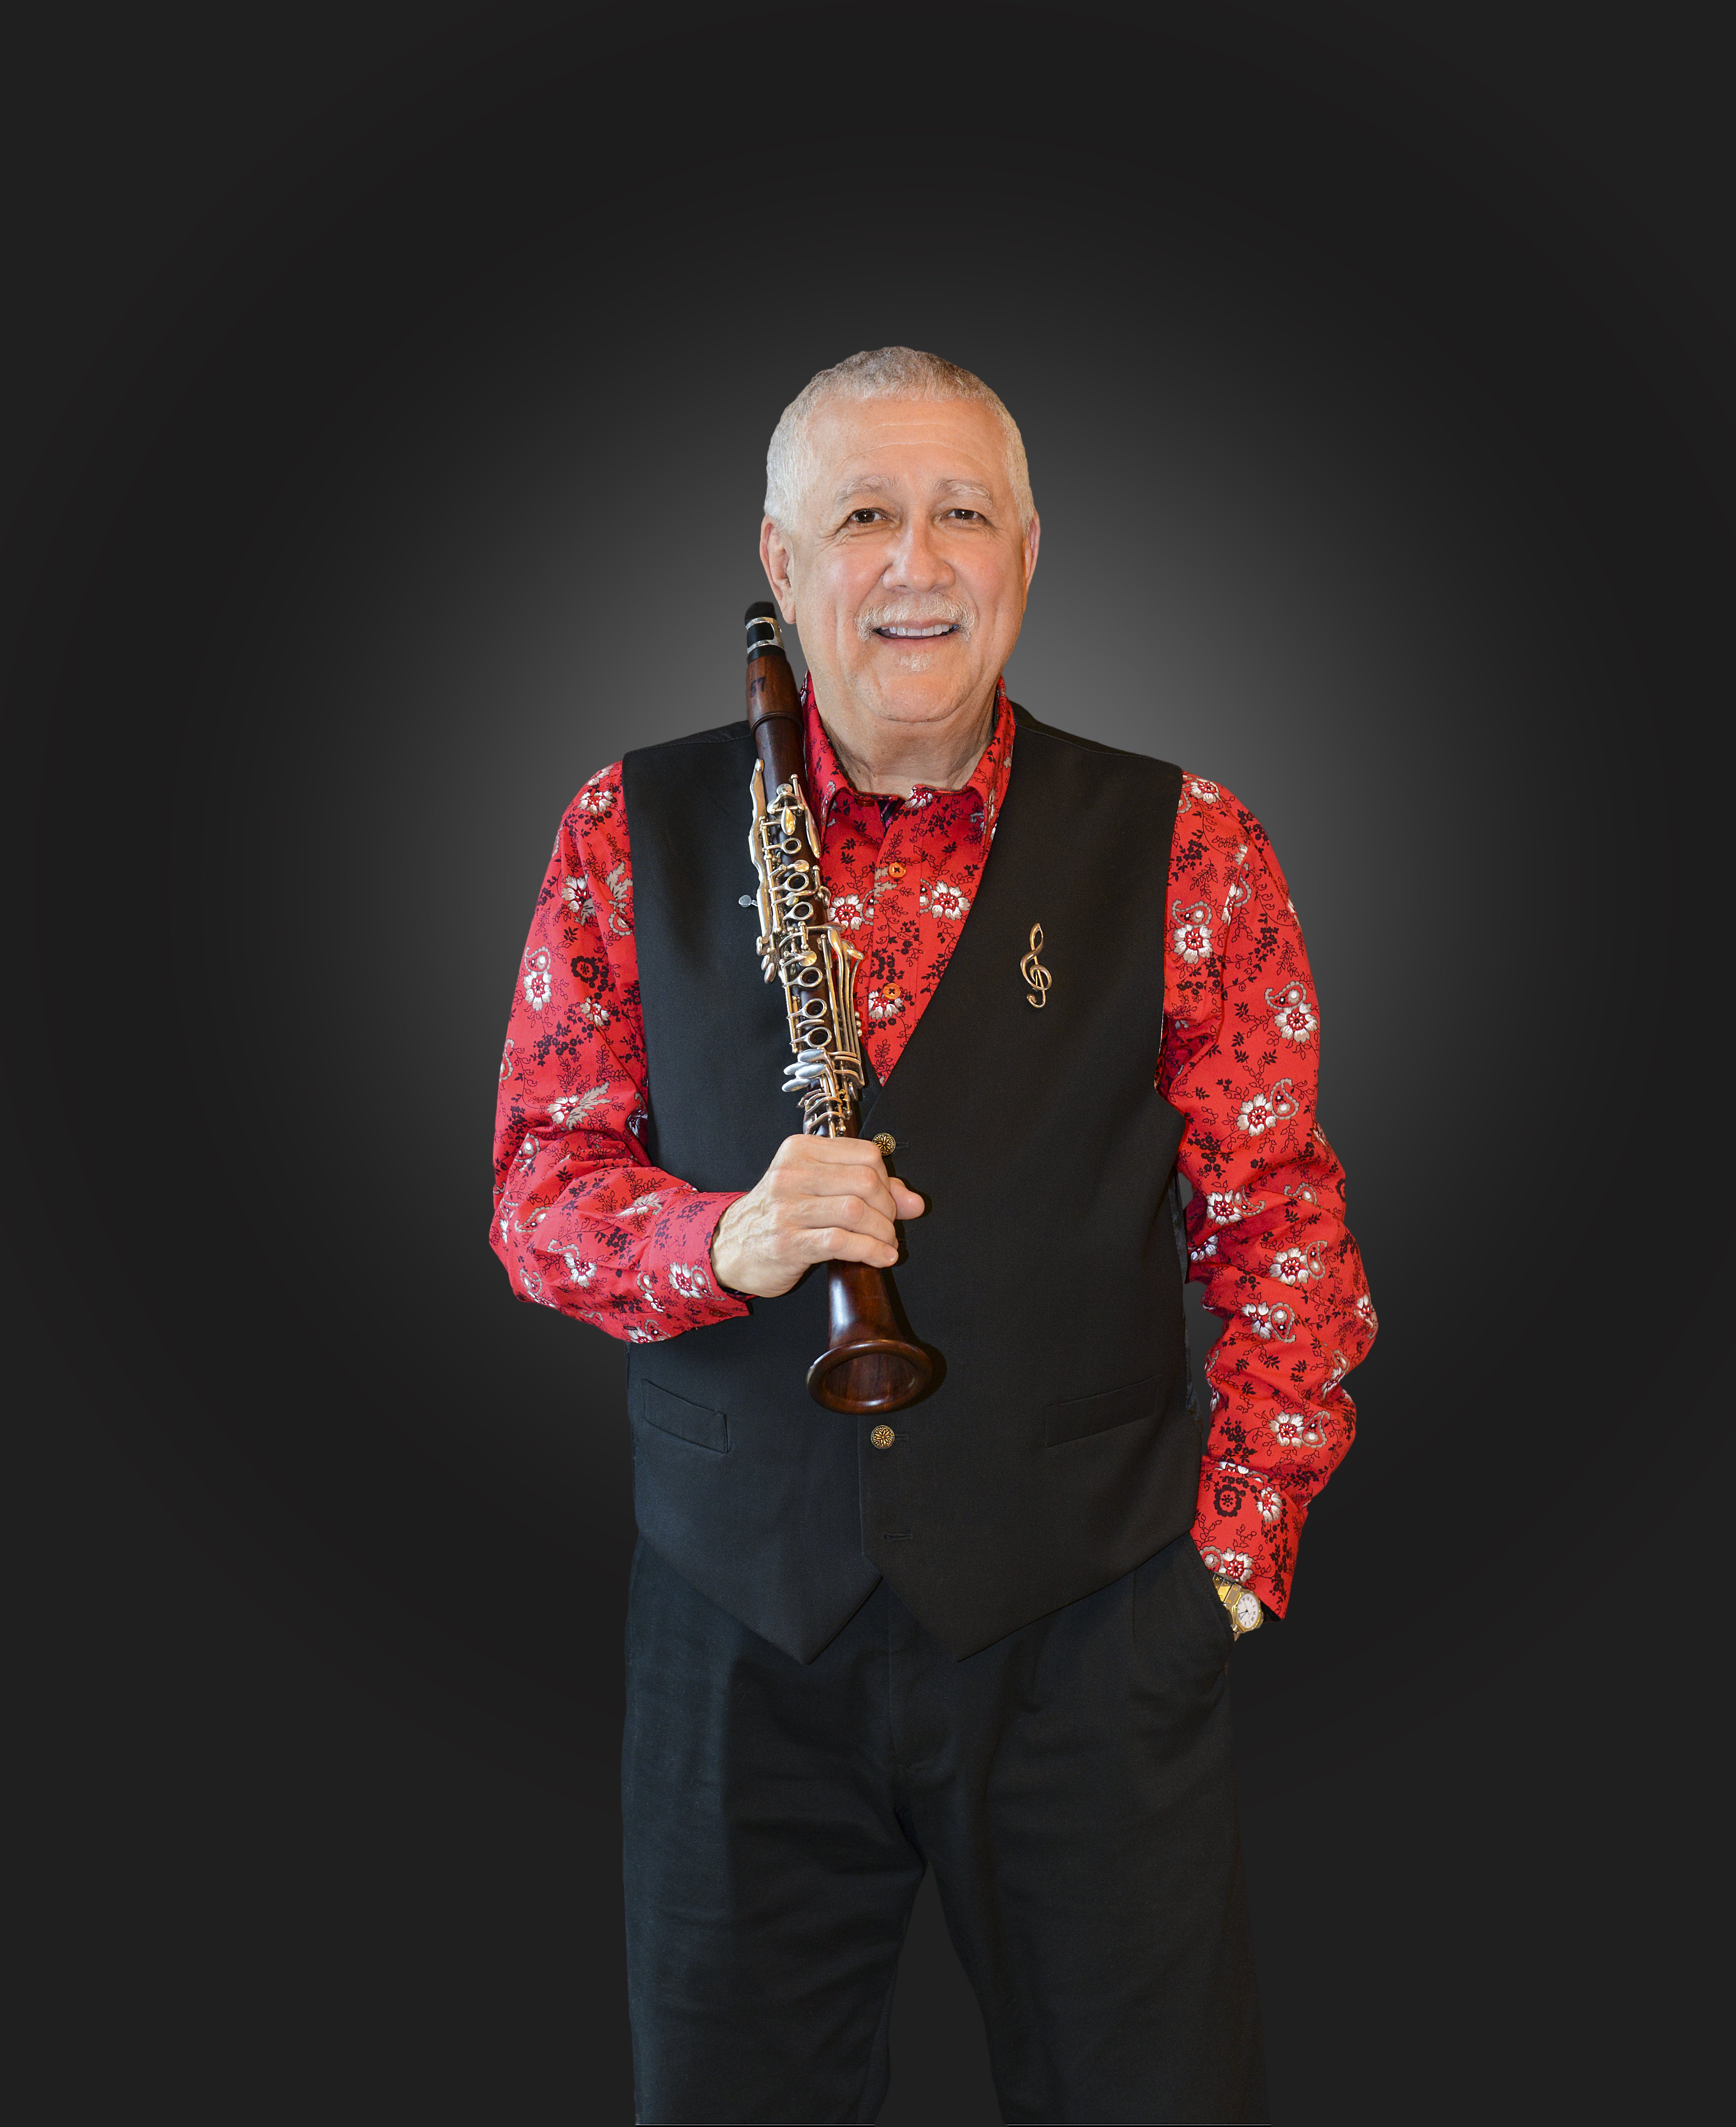 Paquito D'Rivera, Photo by AMNH, R. Mickens